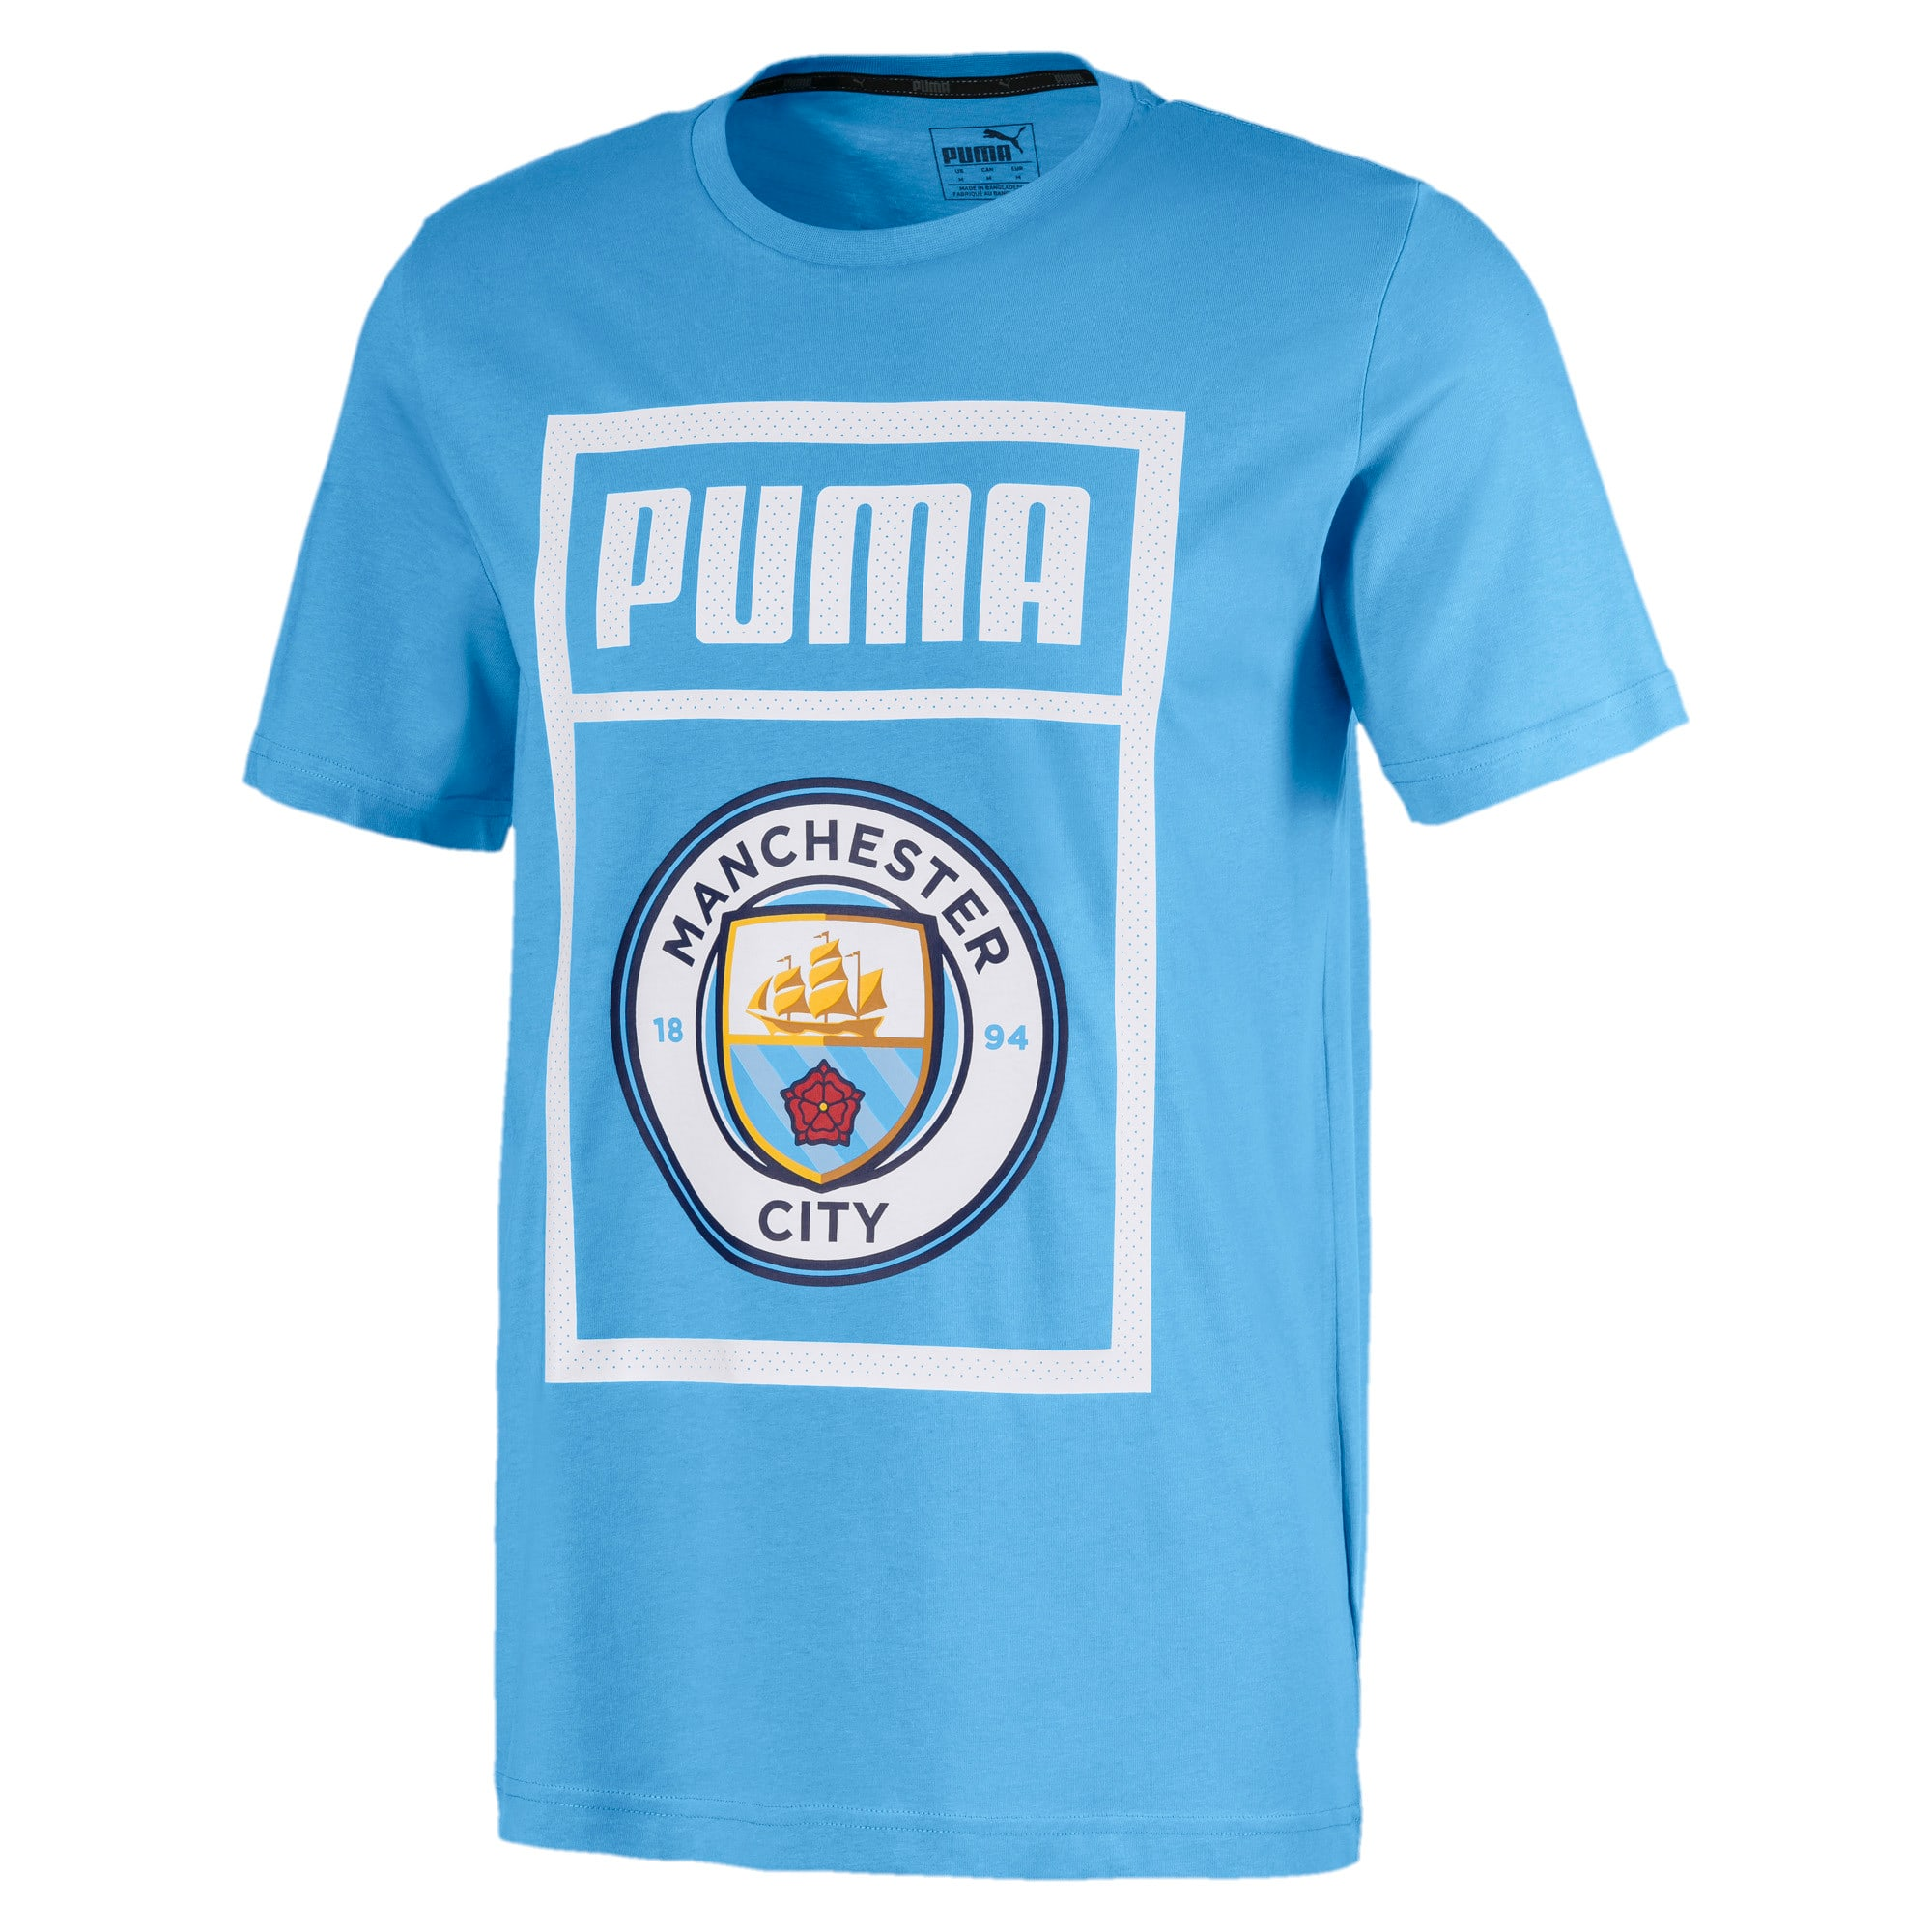 Thumbnail 1 of Essentials Short Sleeve Men's Tee, Team Light Blue-Puma white, medium